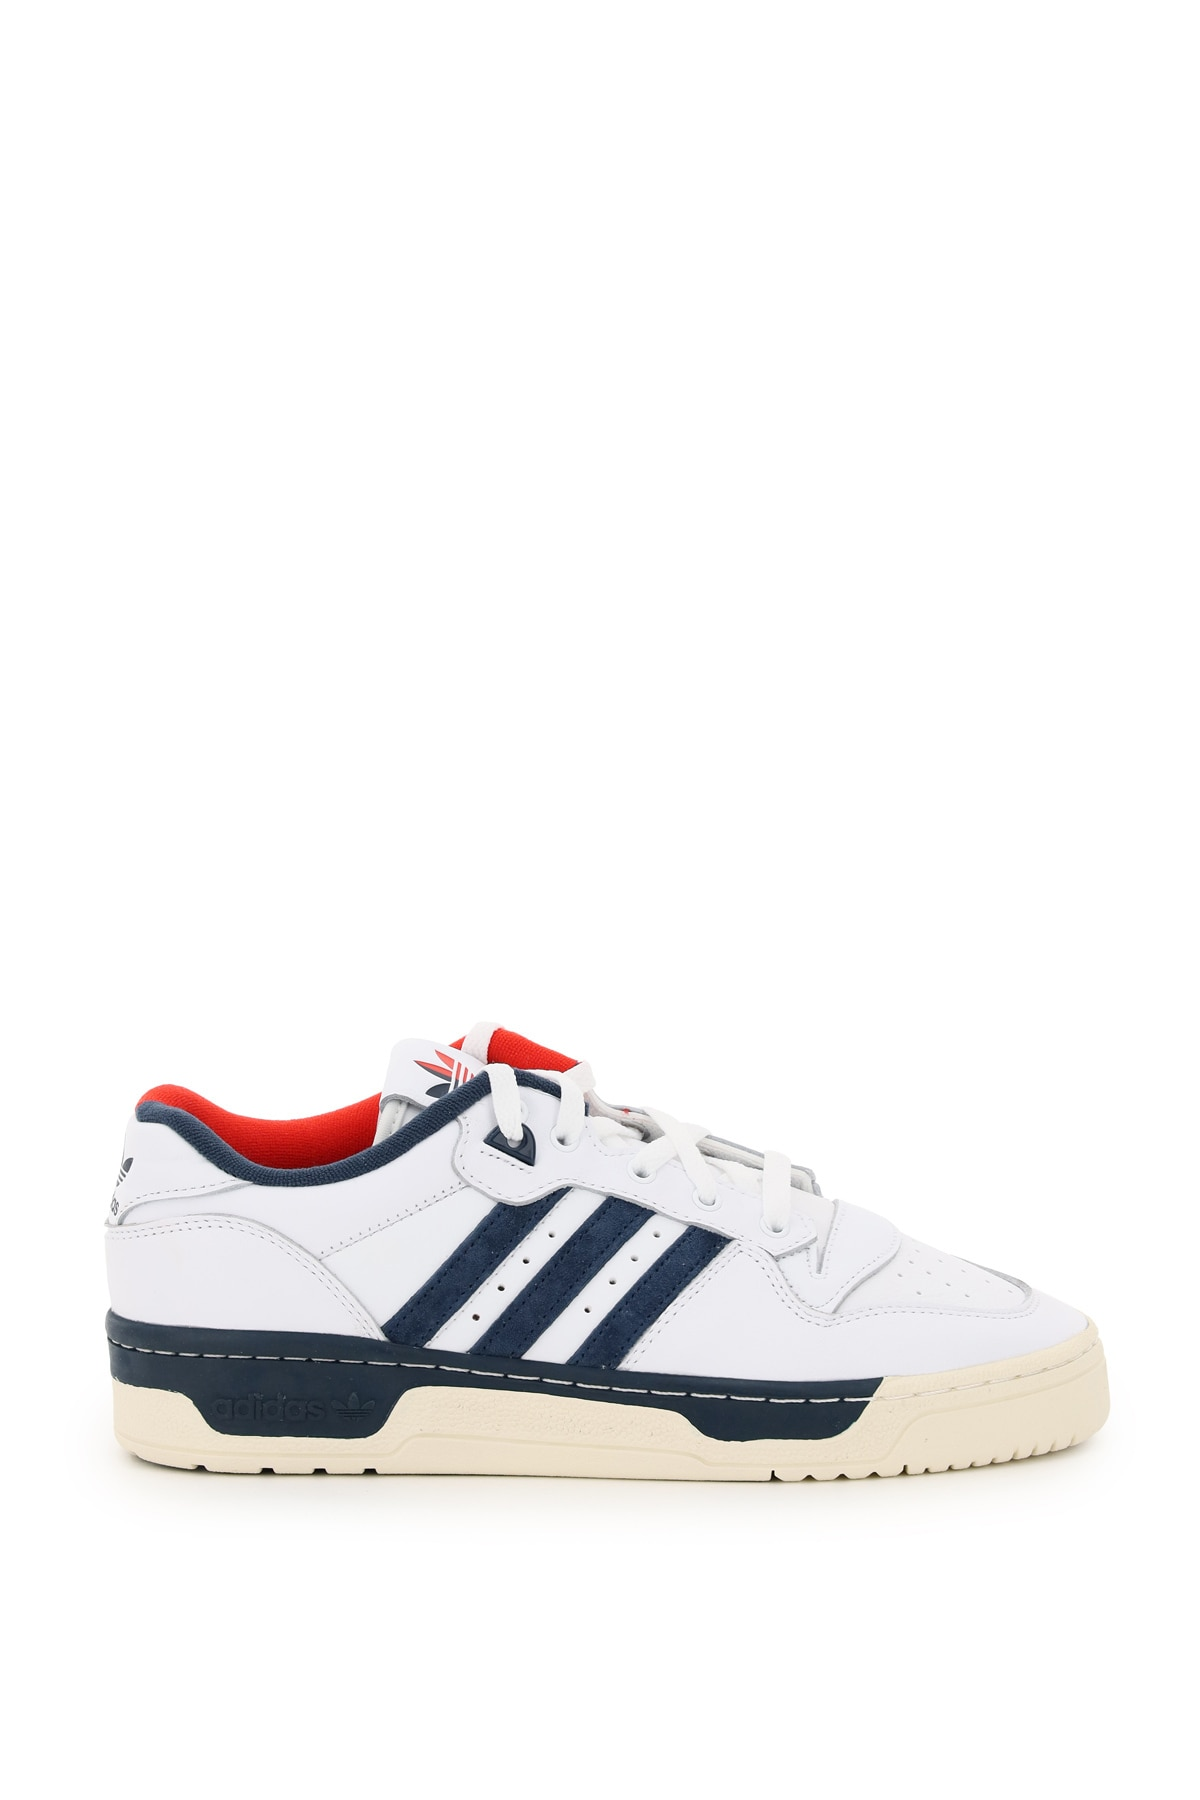 ADIDAS RIVALRY LOW PREMIUM SNEAKERS 9 White, Red Leather